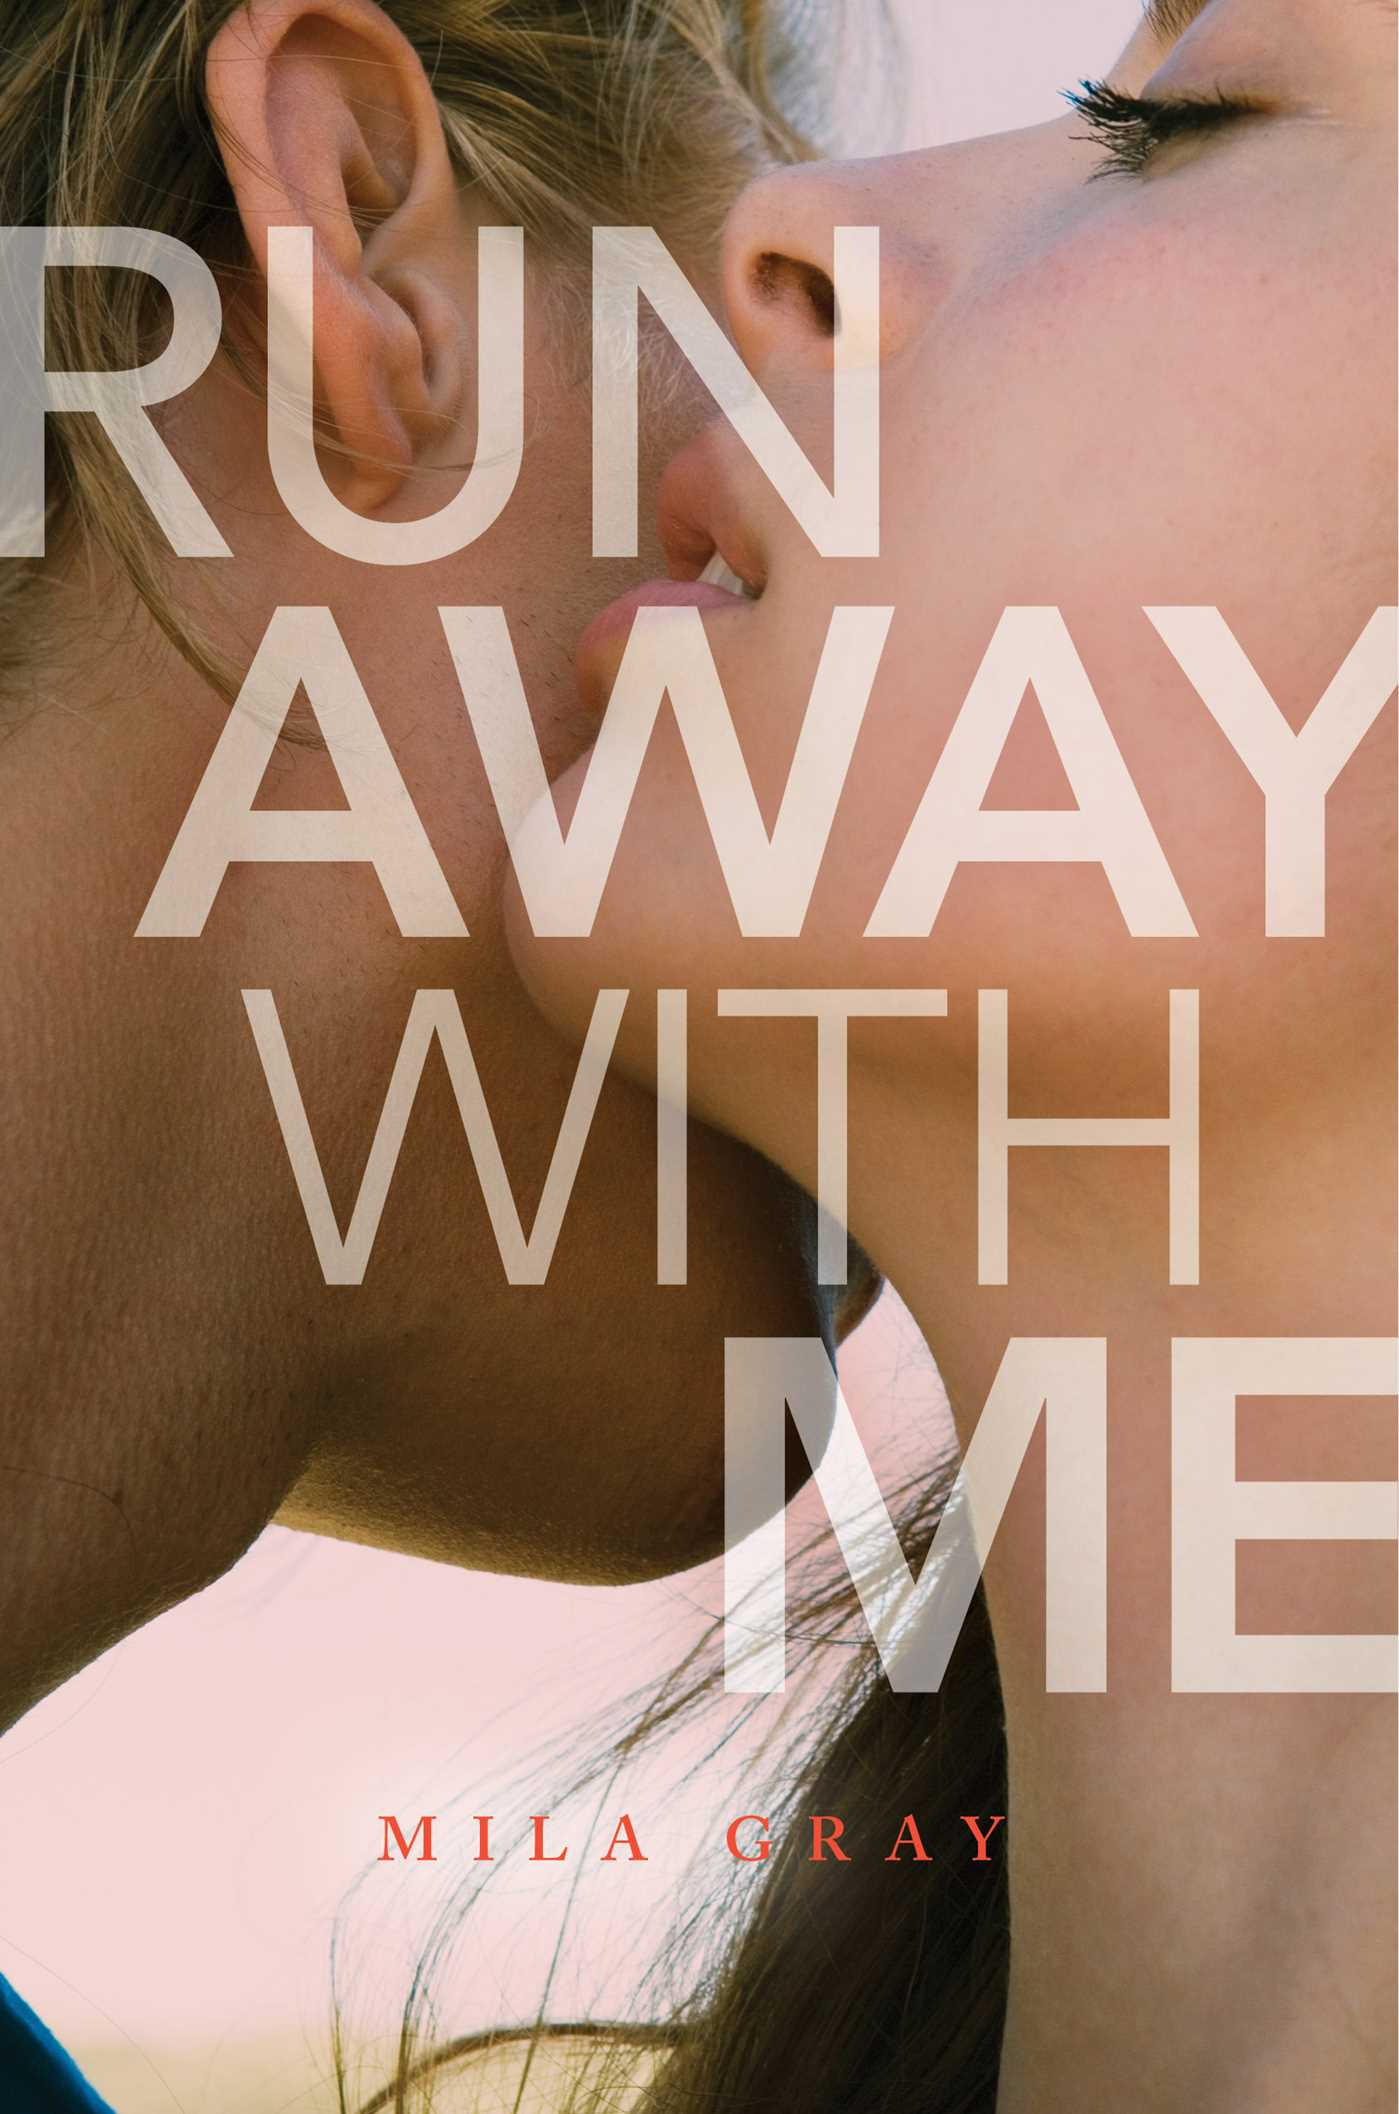 run-away-with-me-9781481490986_hr